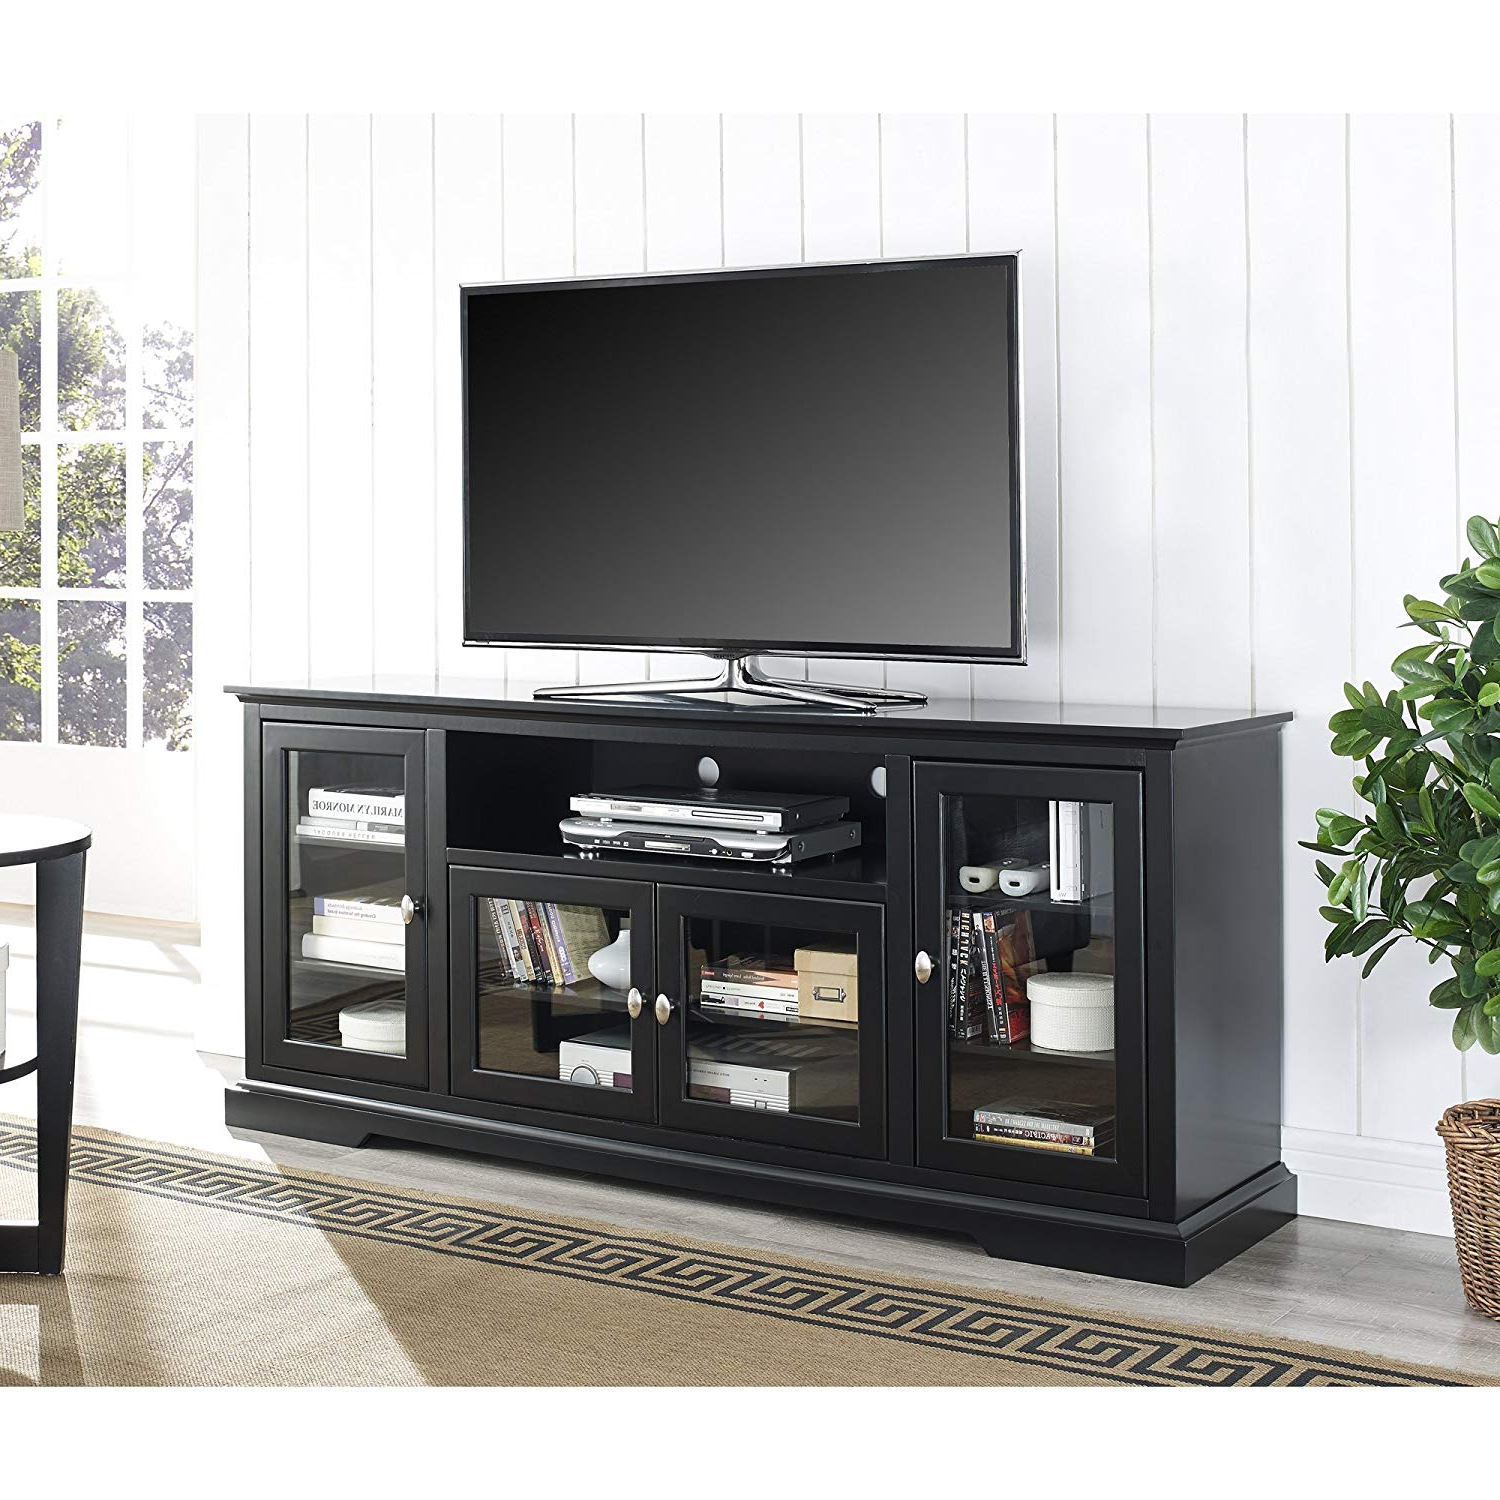 "Amazon: We Furniture 70"" Highboy Style Wood Tv Stand Console Within Latest Wood Tv Entertainment Stands (Gallery 10 of 20)"